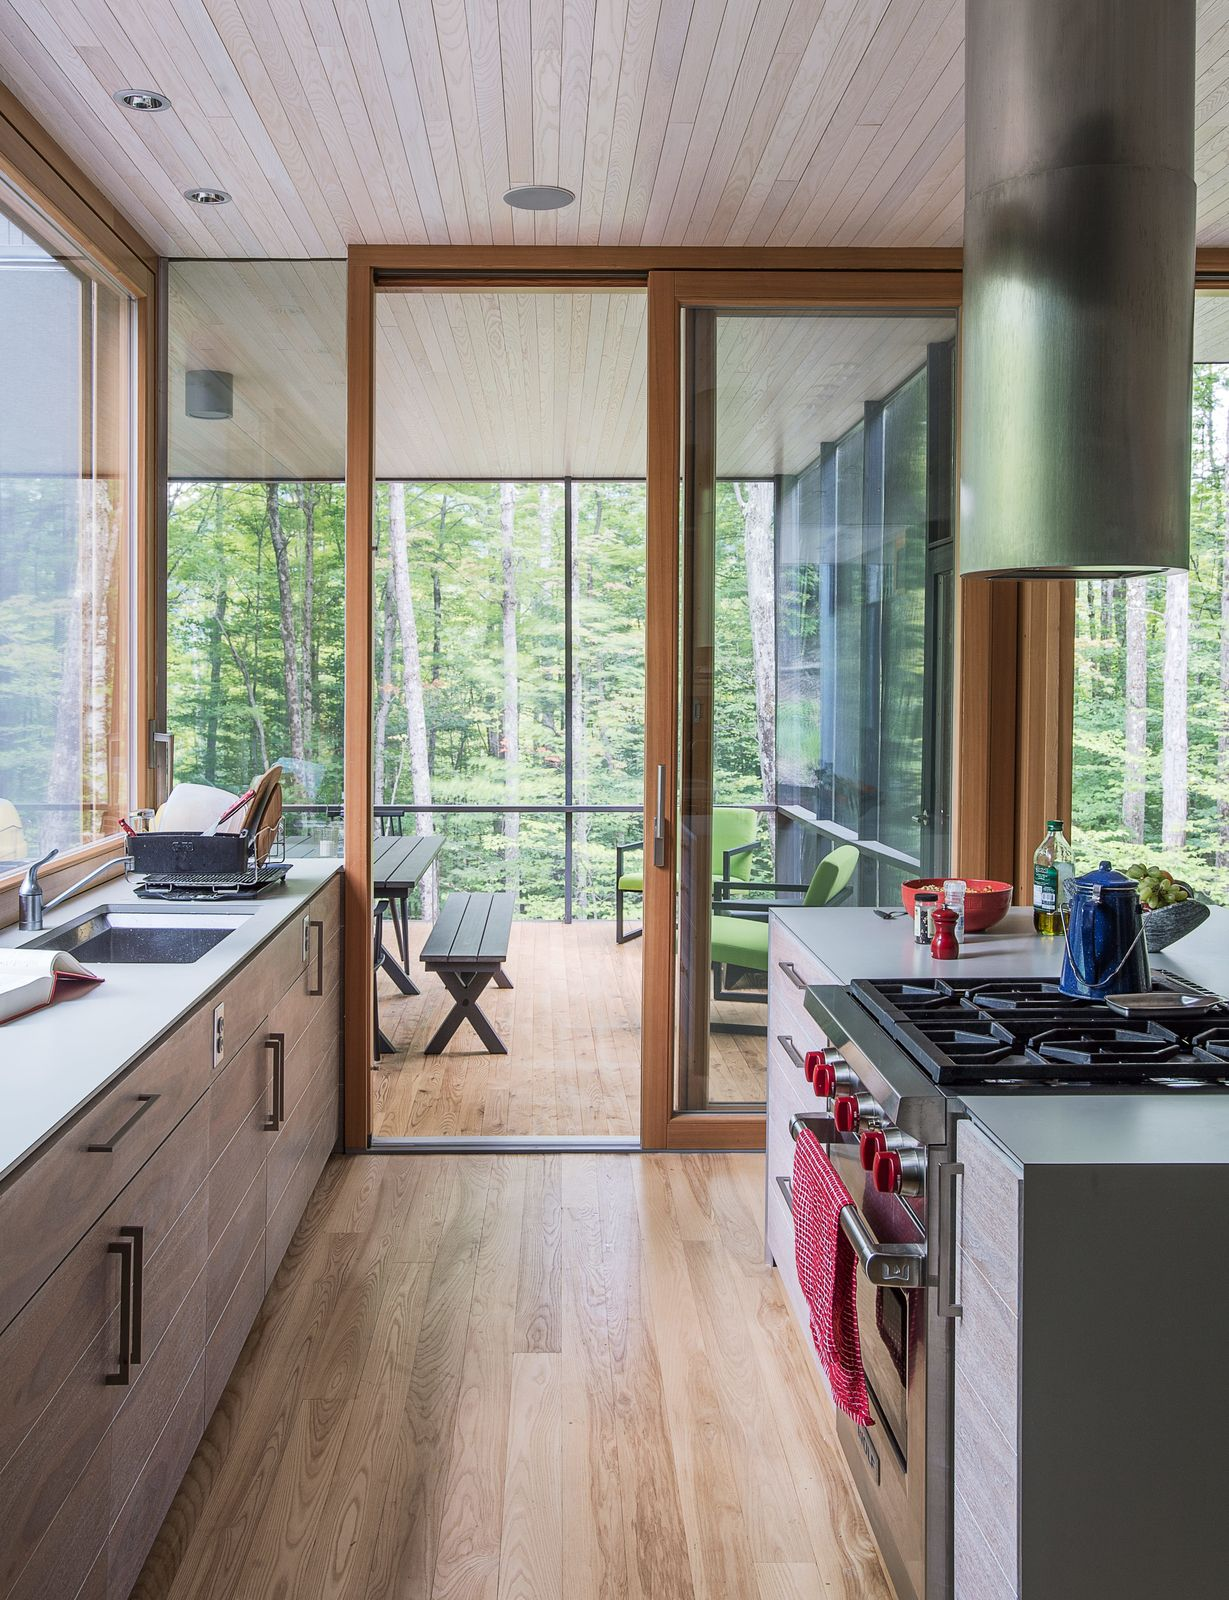 In the kitchen the cabinetry is walnut veneer with a weathered finish applied by cabinetmaker david rogers the process involved sanding and rubbing in